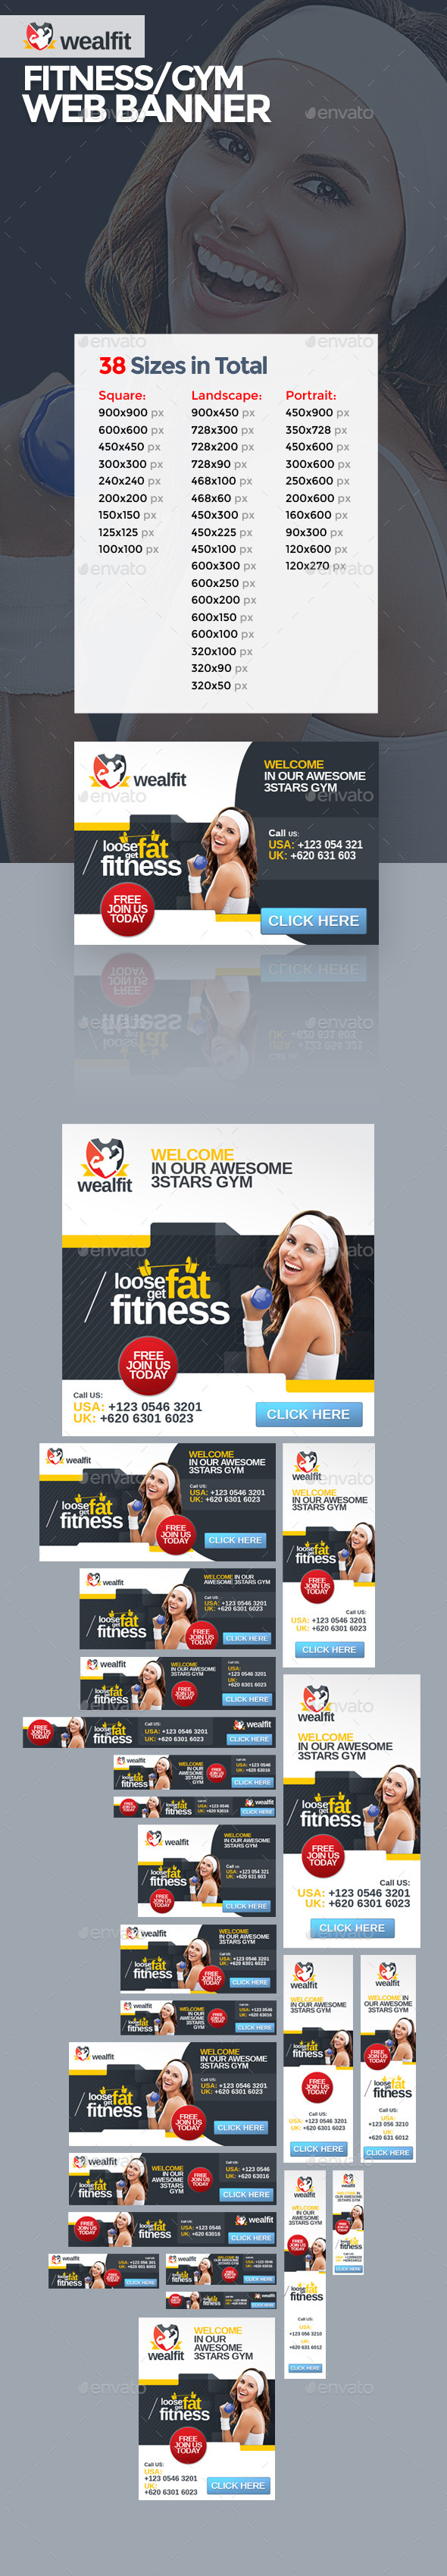 GraphicRiver WealFit Fitness Gym Web Banner 10092326